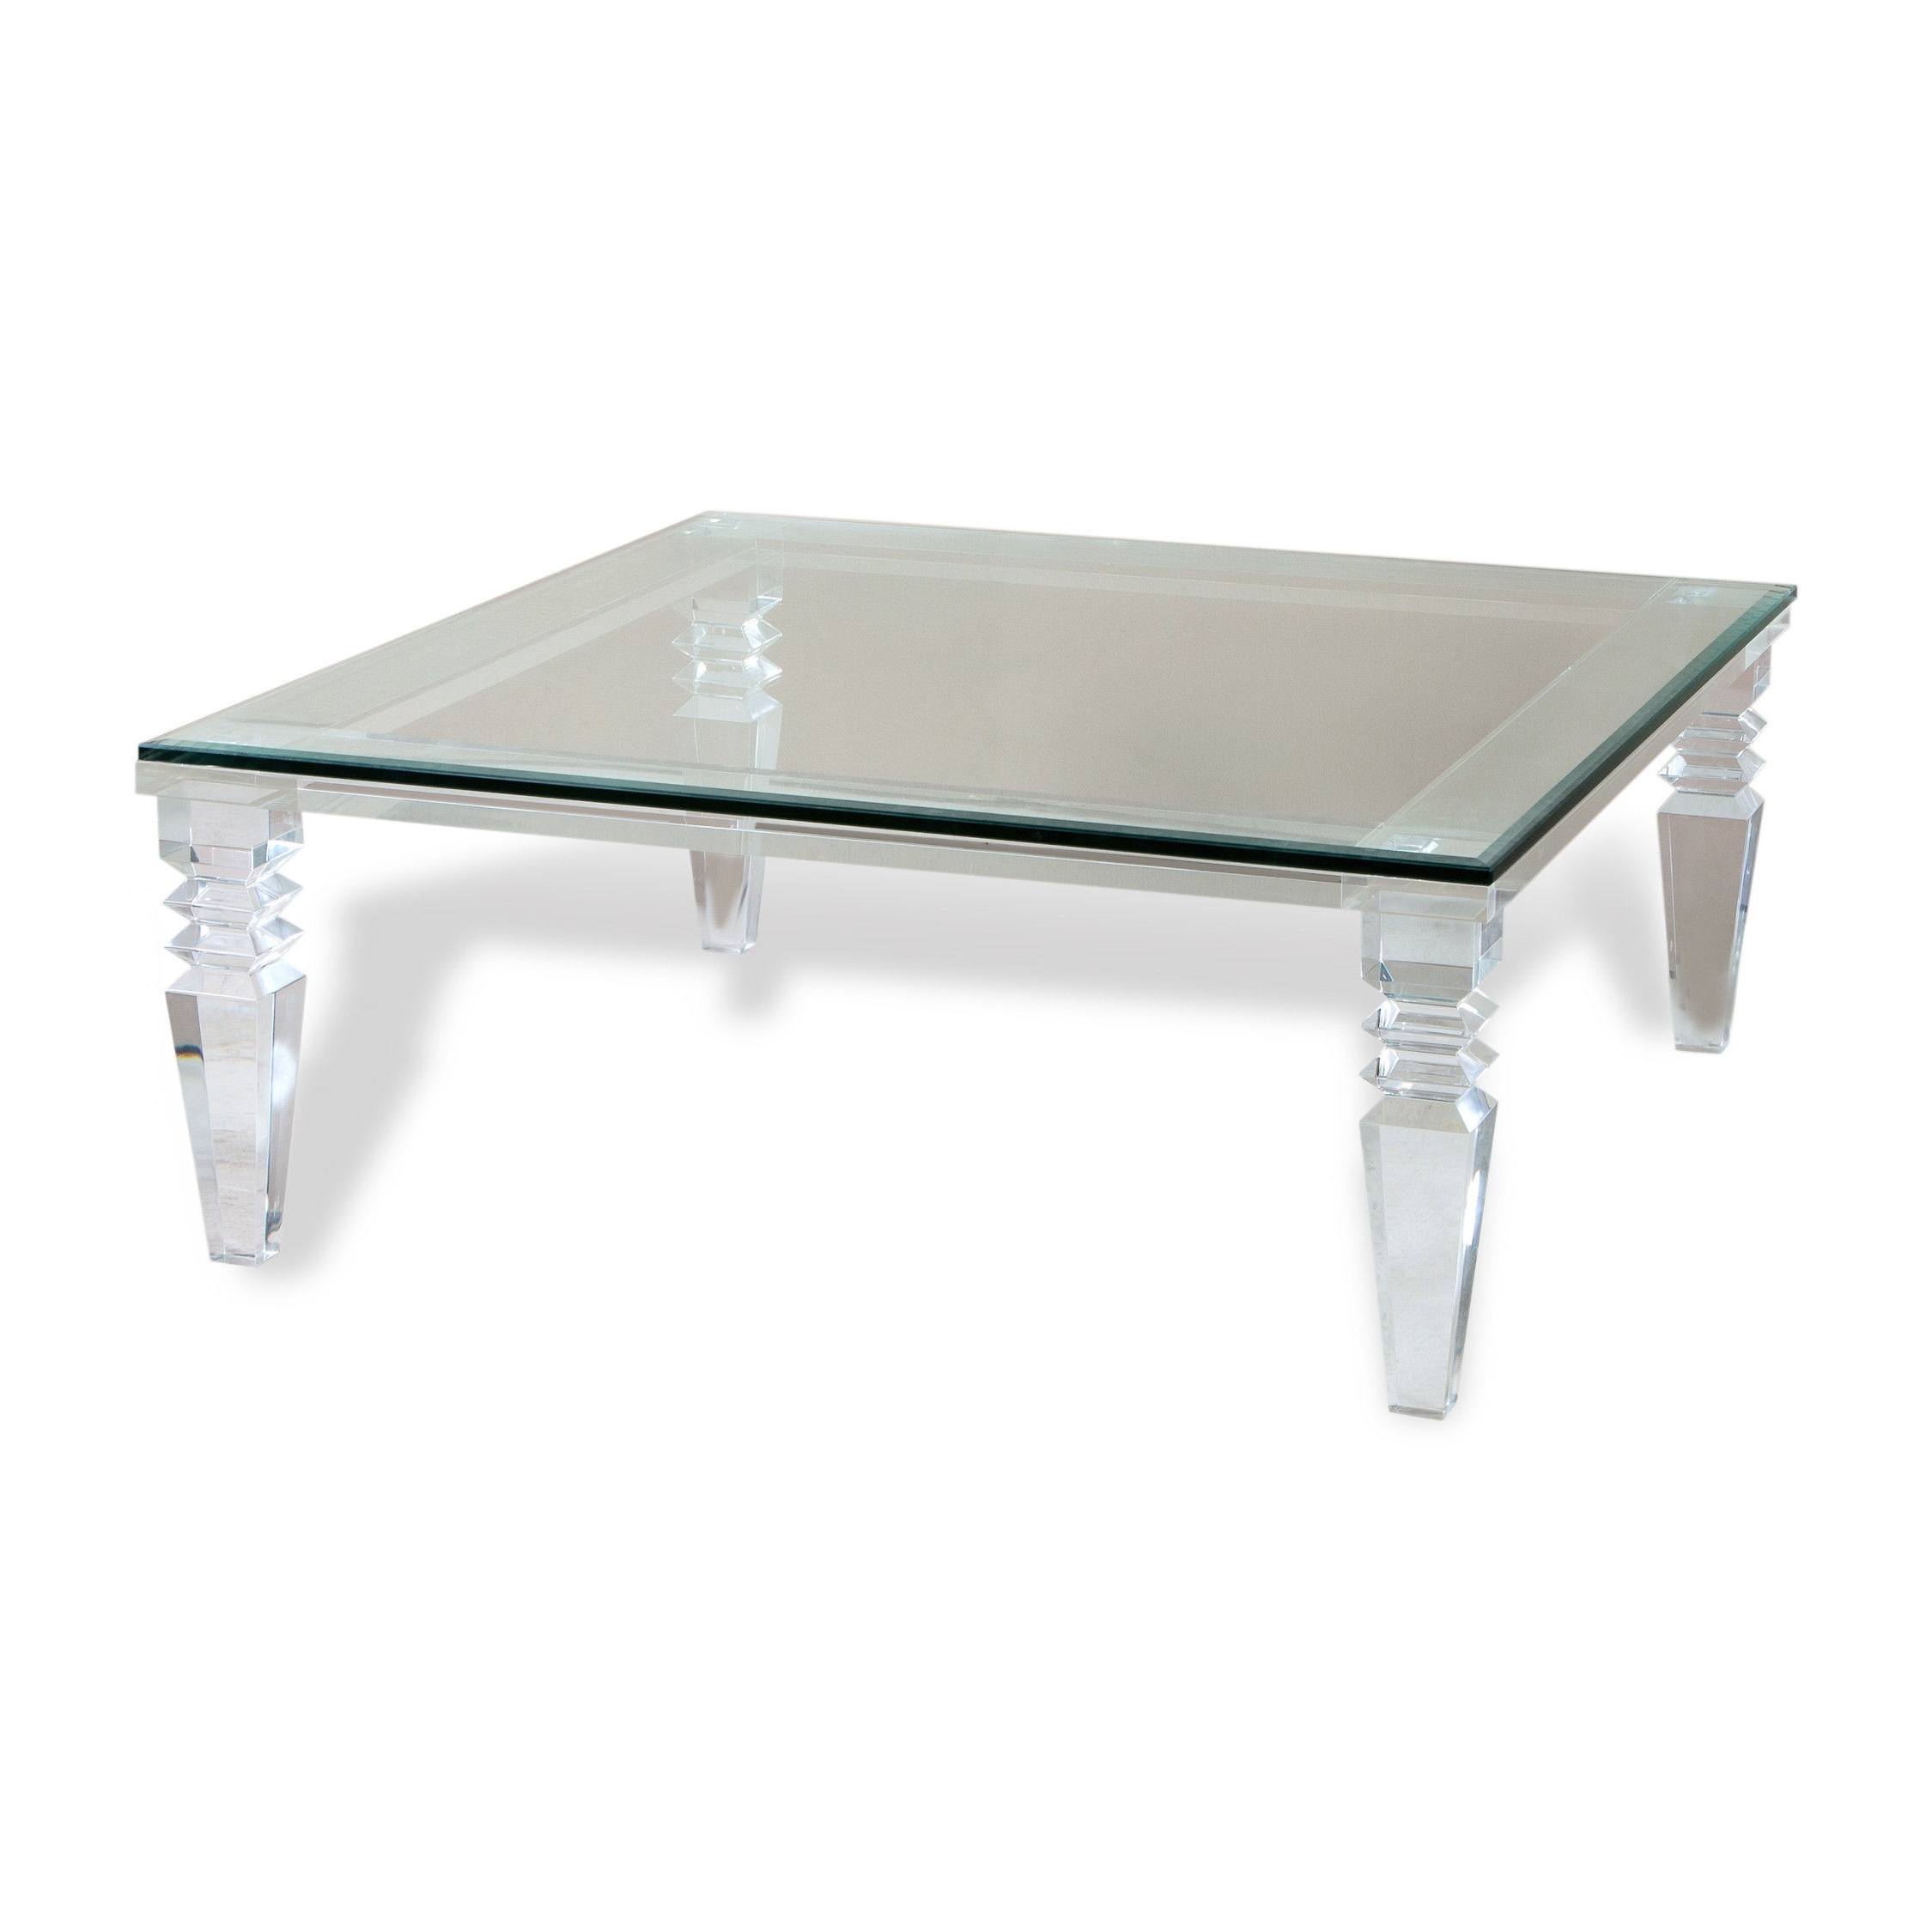 Acrylic Coffee Table For Sale Lovely Furniture Clear Glass Coffee For Recent Peekaboo Acrylic Coffee Tables (View 11 of 20)